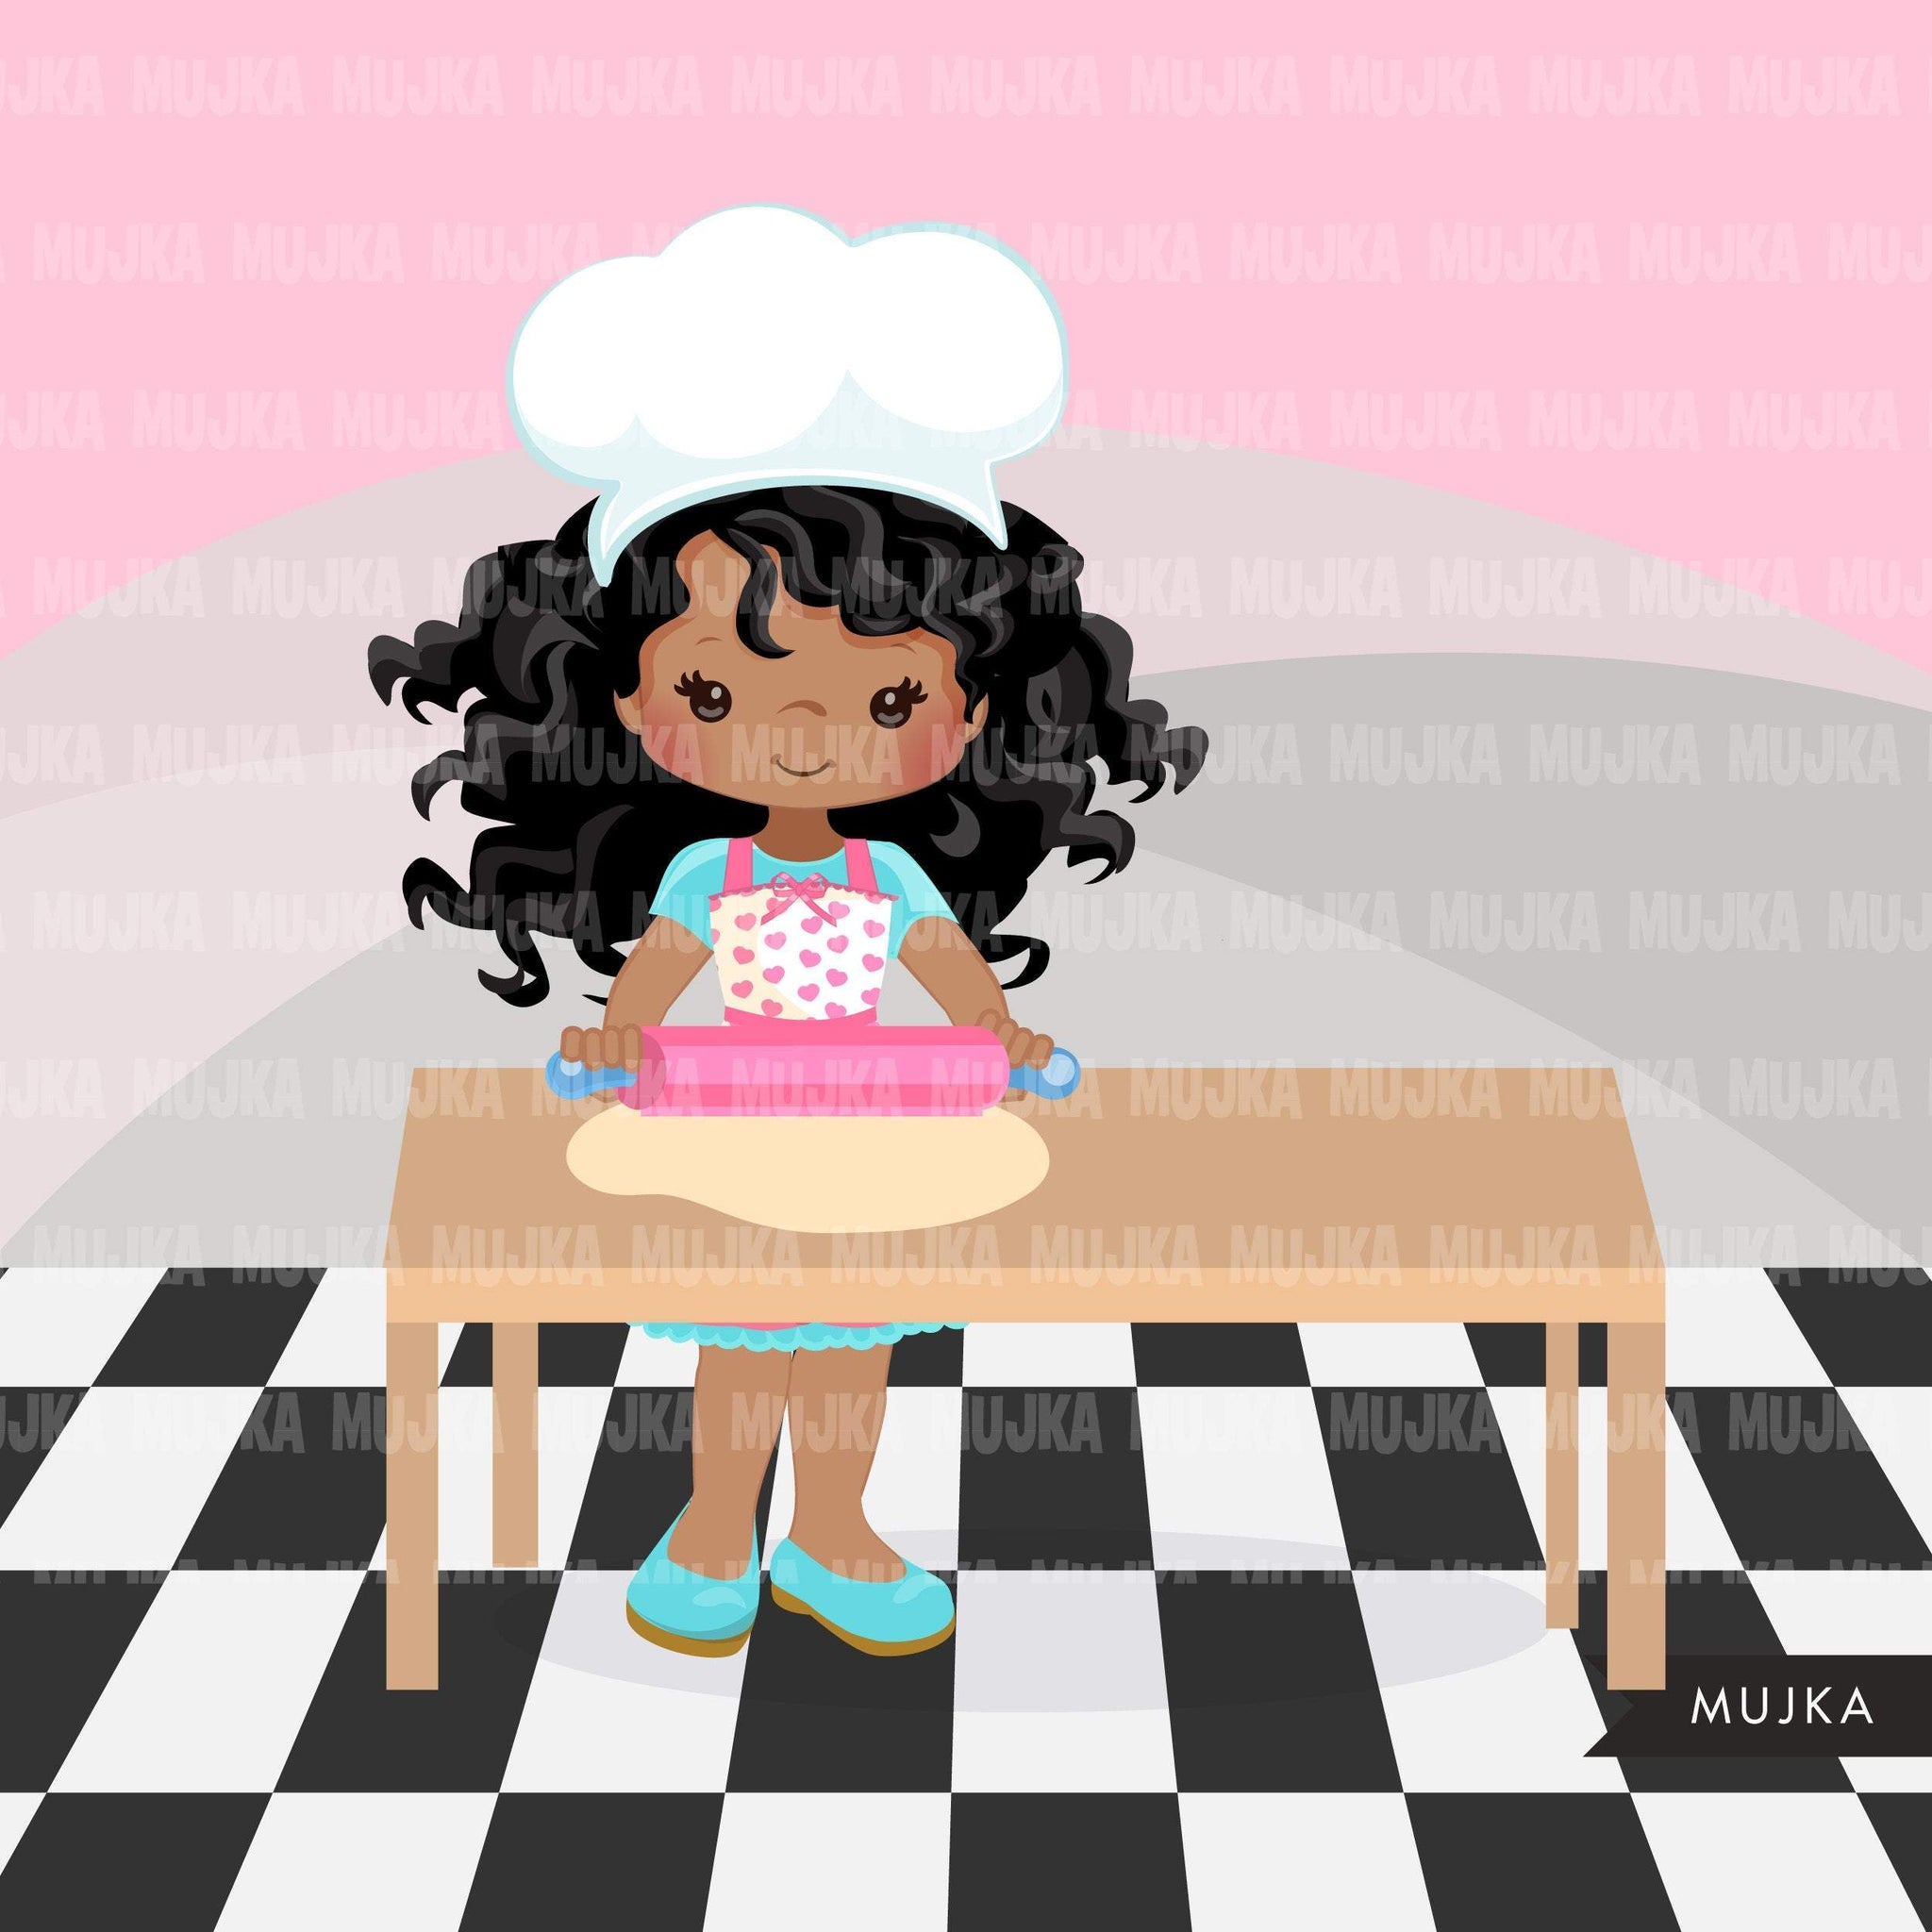 Baking Clipart, Cute afro baker characters, kitchen chores, baking party, cake, spatula, pastry chef, cookie graphics, baking fun clip art